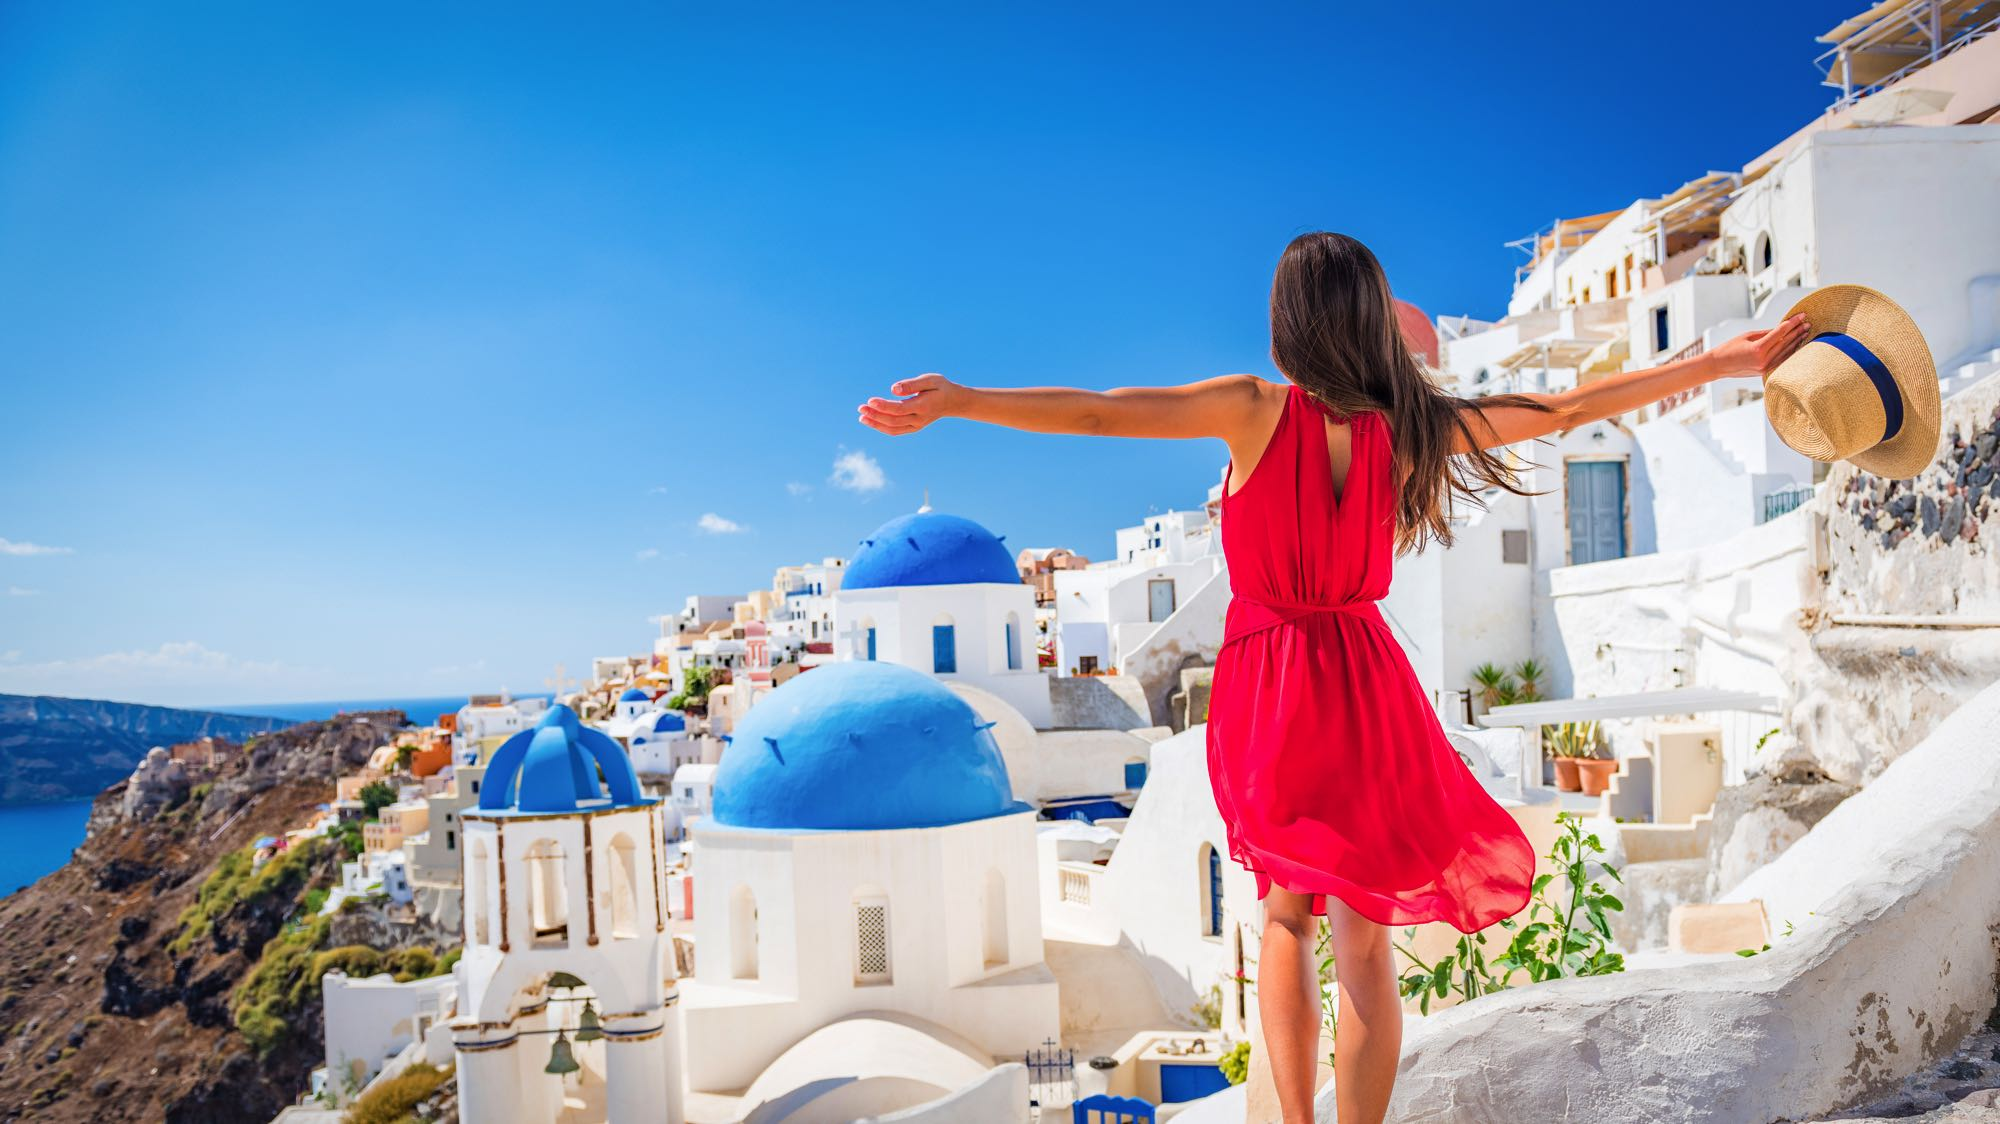 15 Best Places To Visit in Greece (2021 Update)